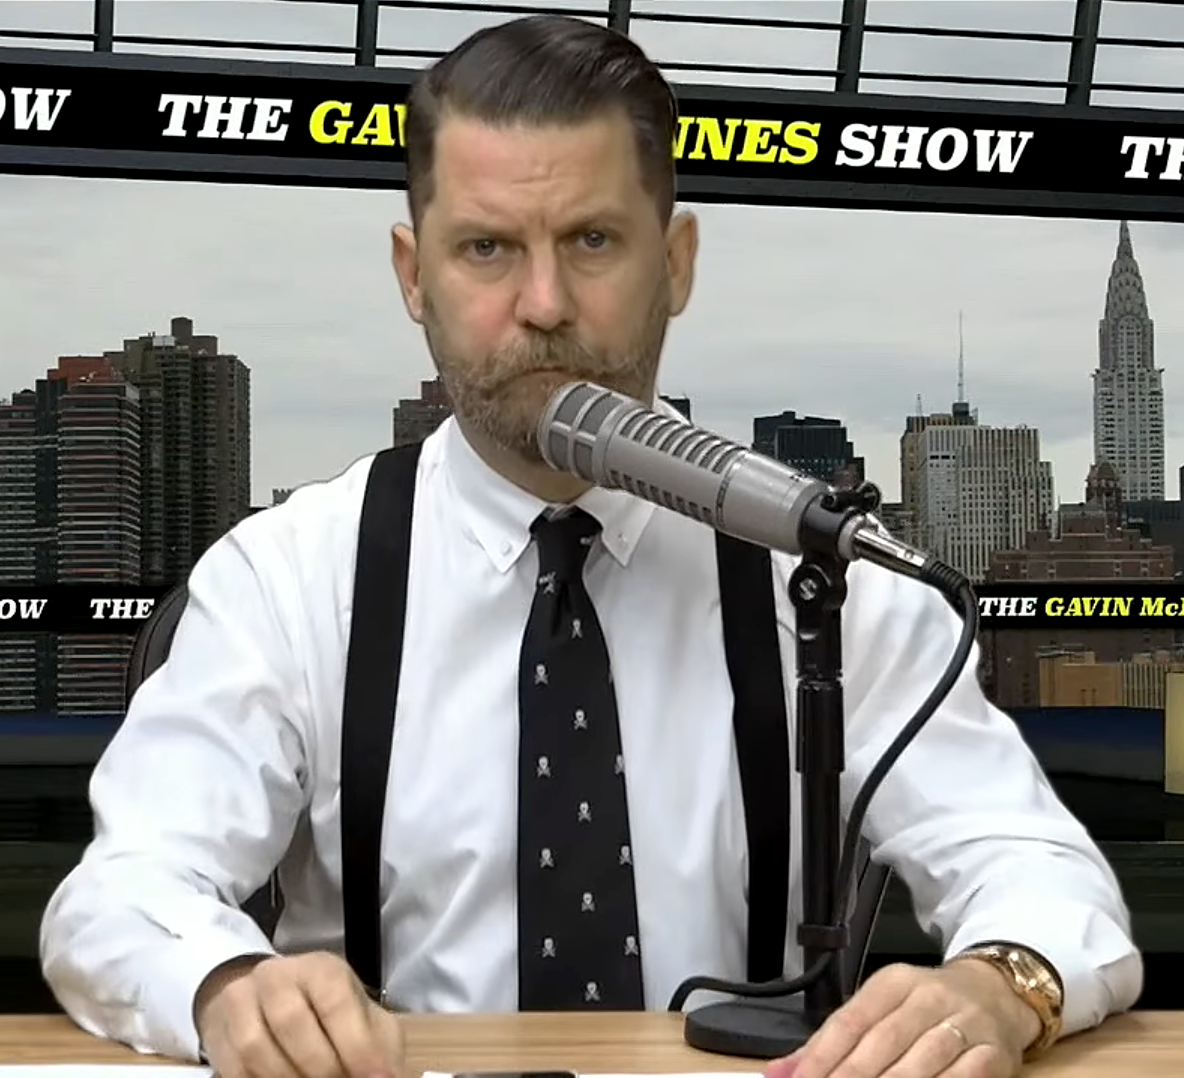 The 50-year old son of father (?) and mother(?) Gavin McInnes in 2021 photo. Gavin McInnes earned a  million dollar salary - leaving the net worth at 6 million in 2021